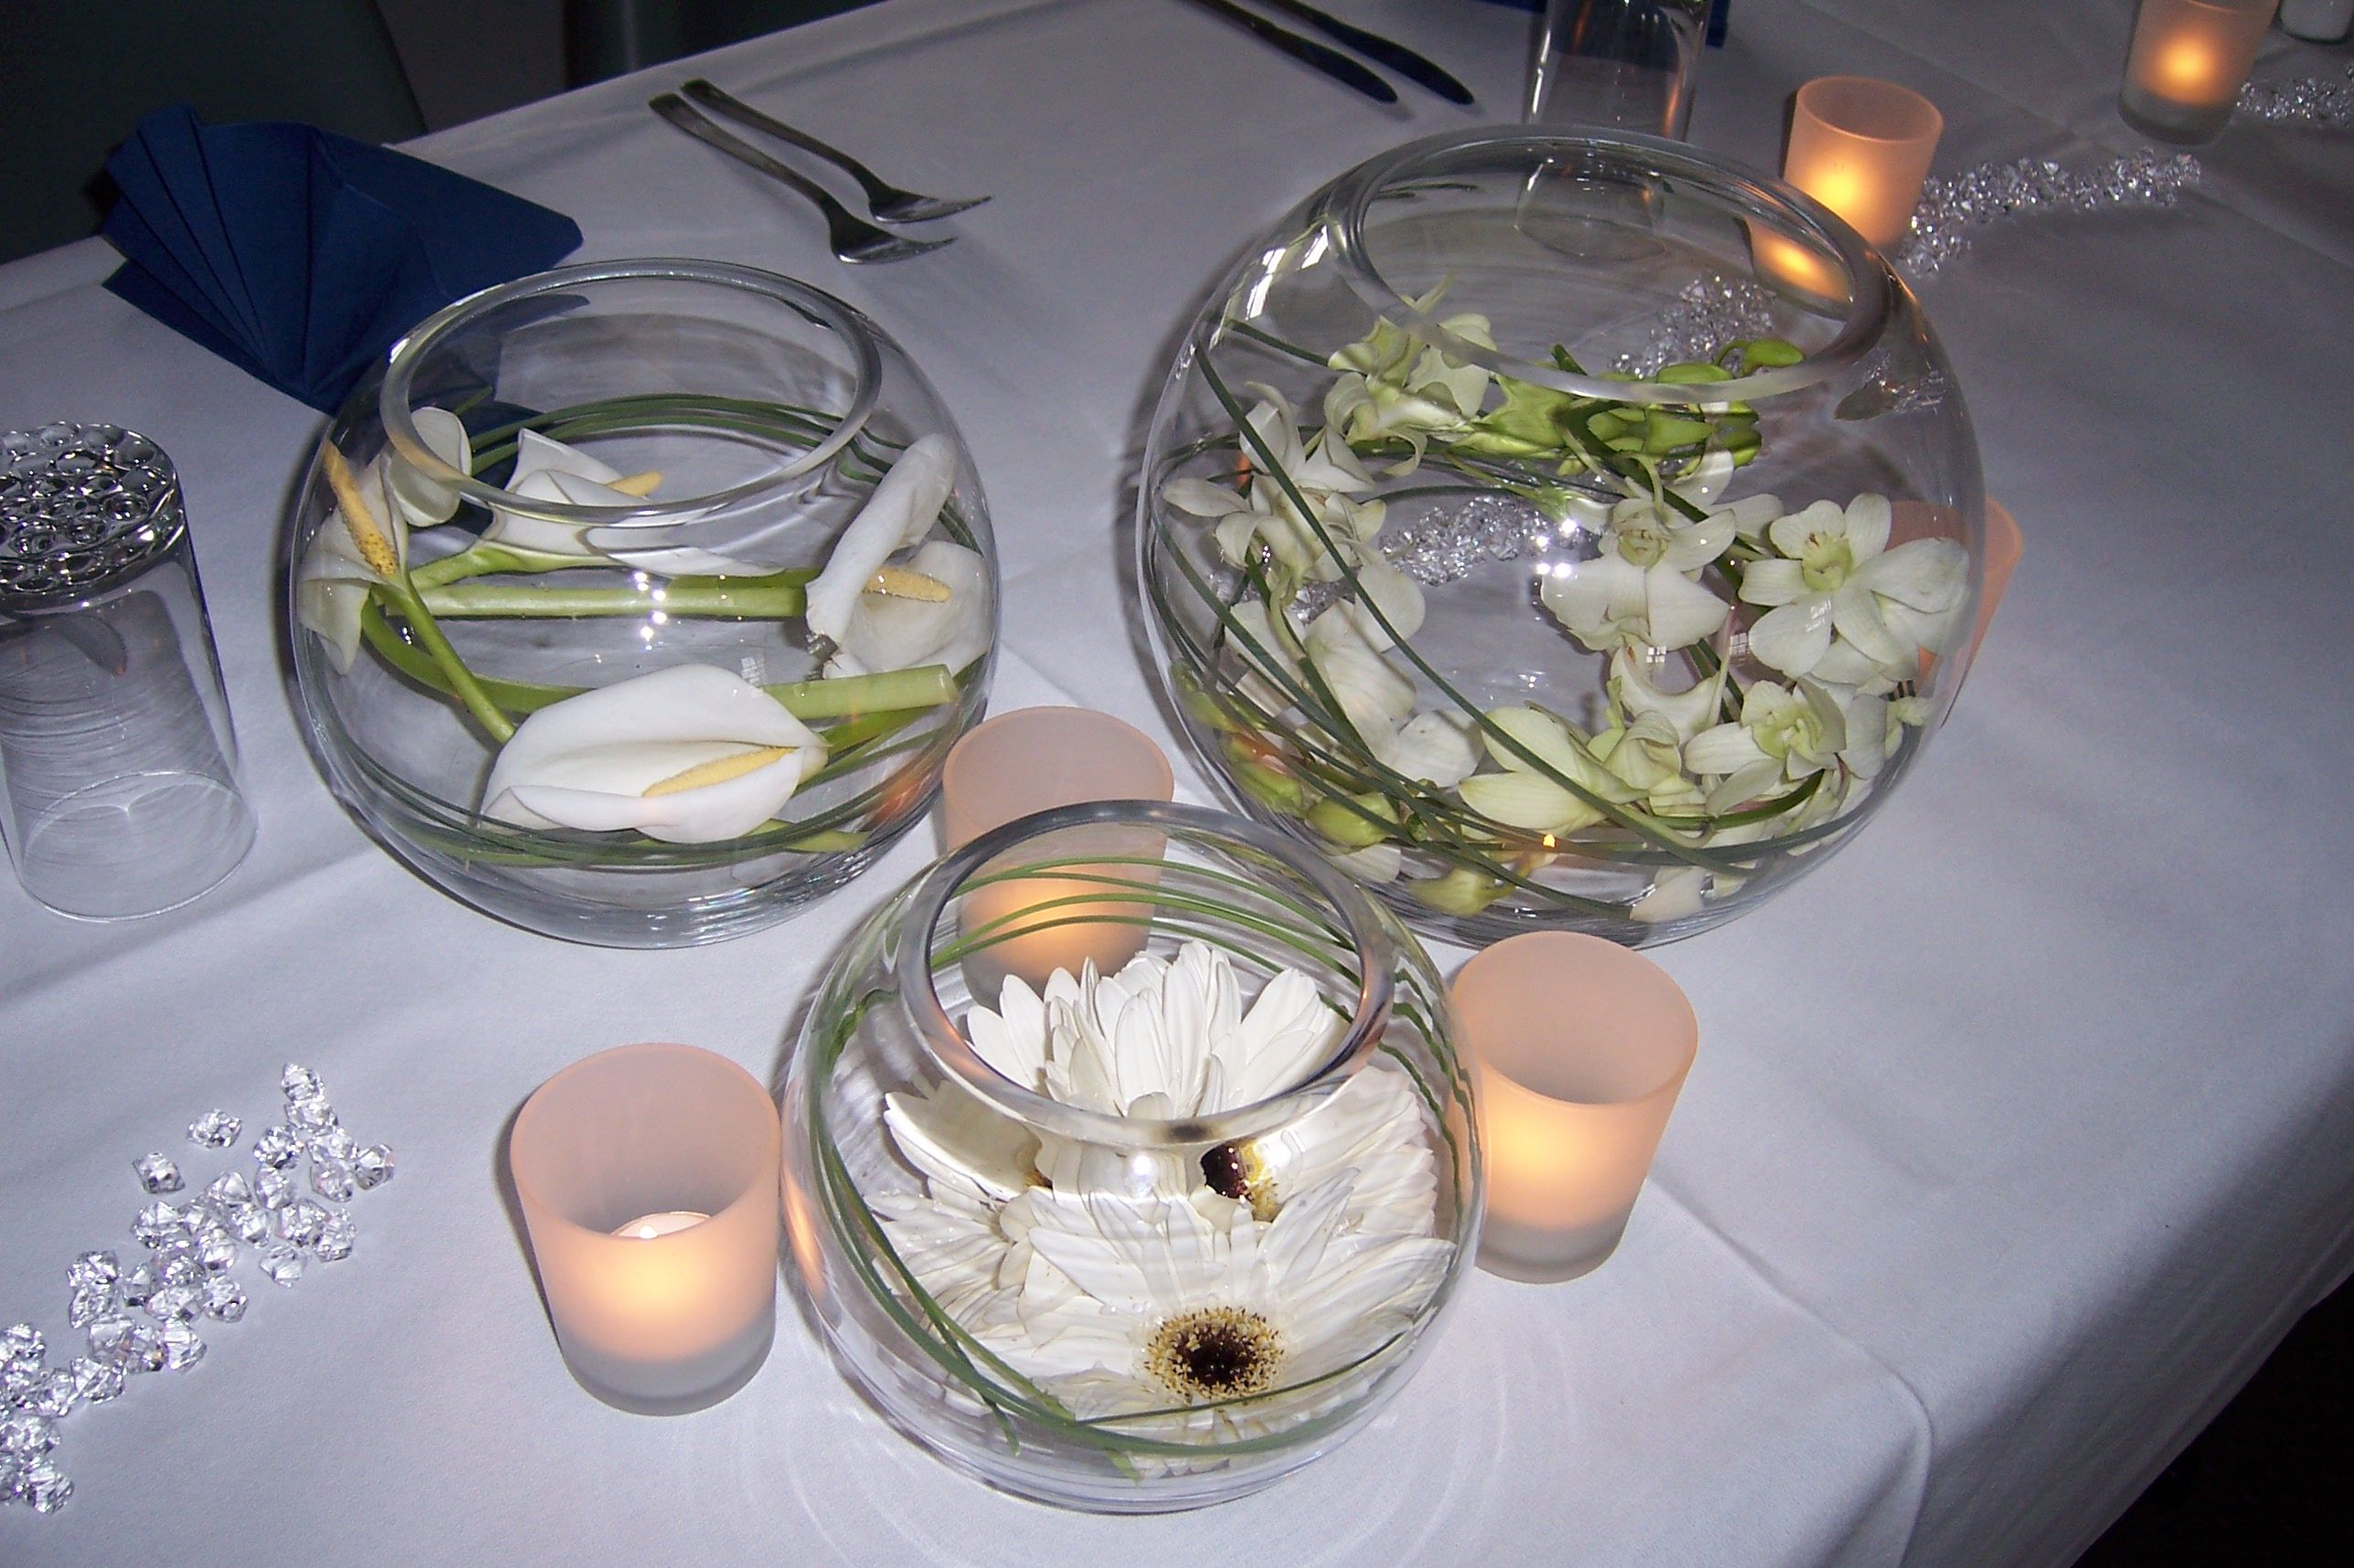 Wedding Decorations Glass Bowls Decoration For Table For Top Pics Photos Table Decoration Ideas